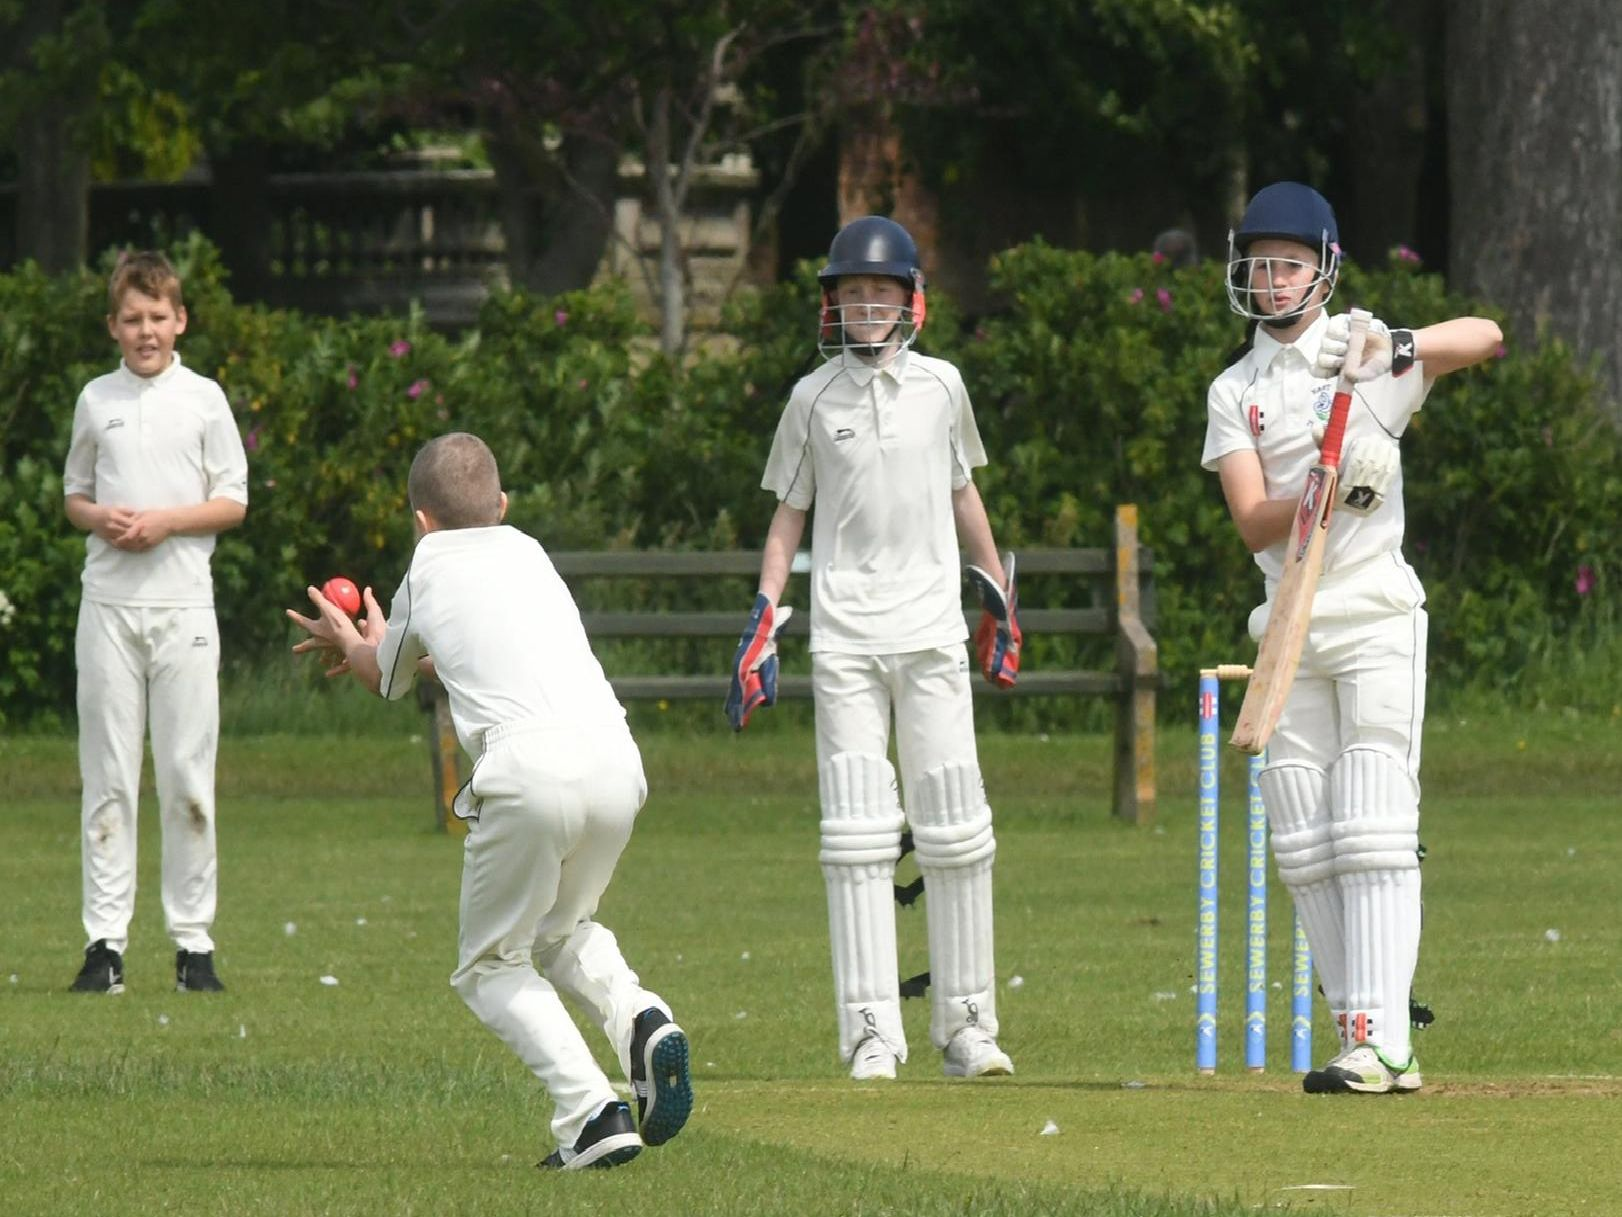 Sewerby U13s v Seamer Photos by Dom Taylor